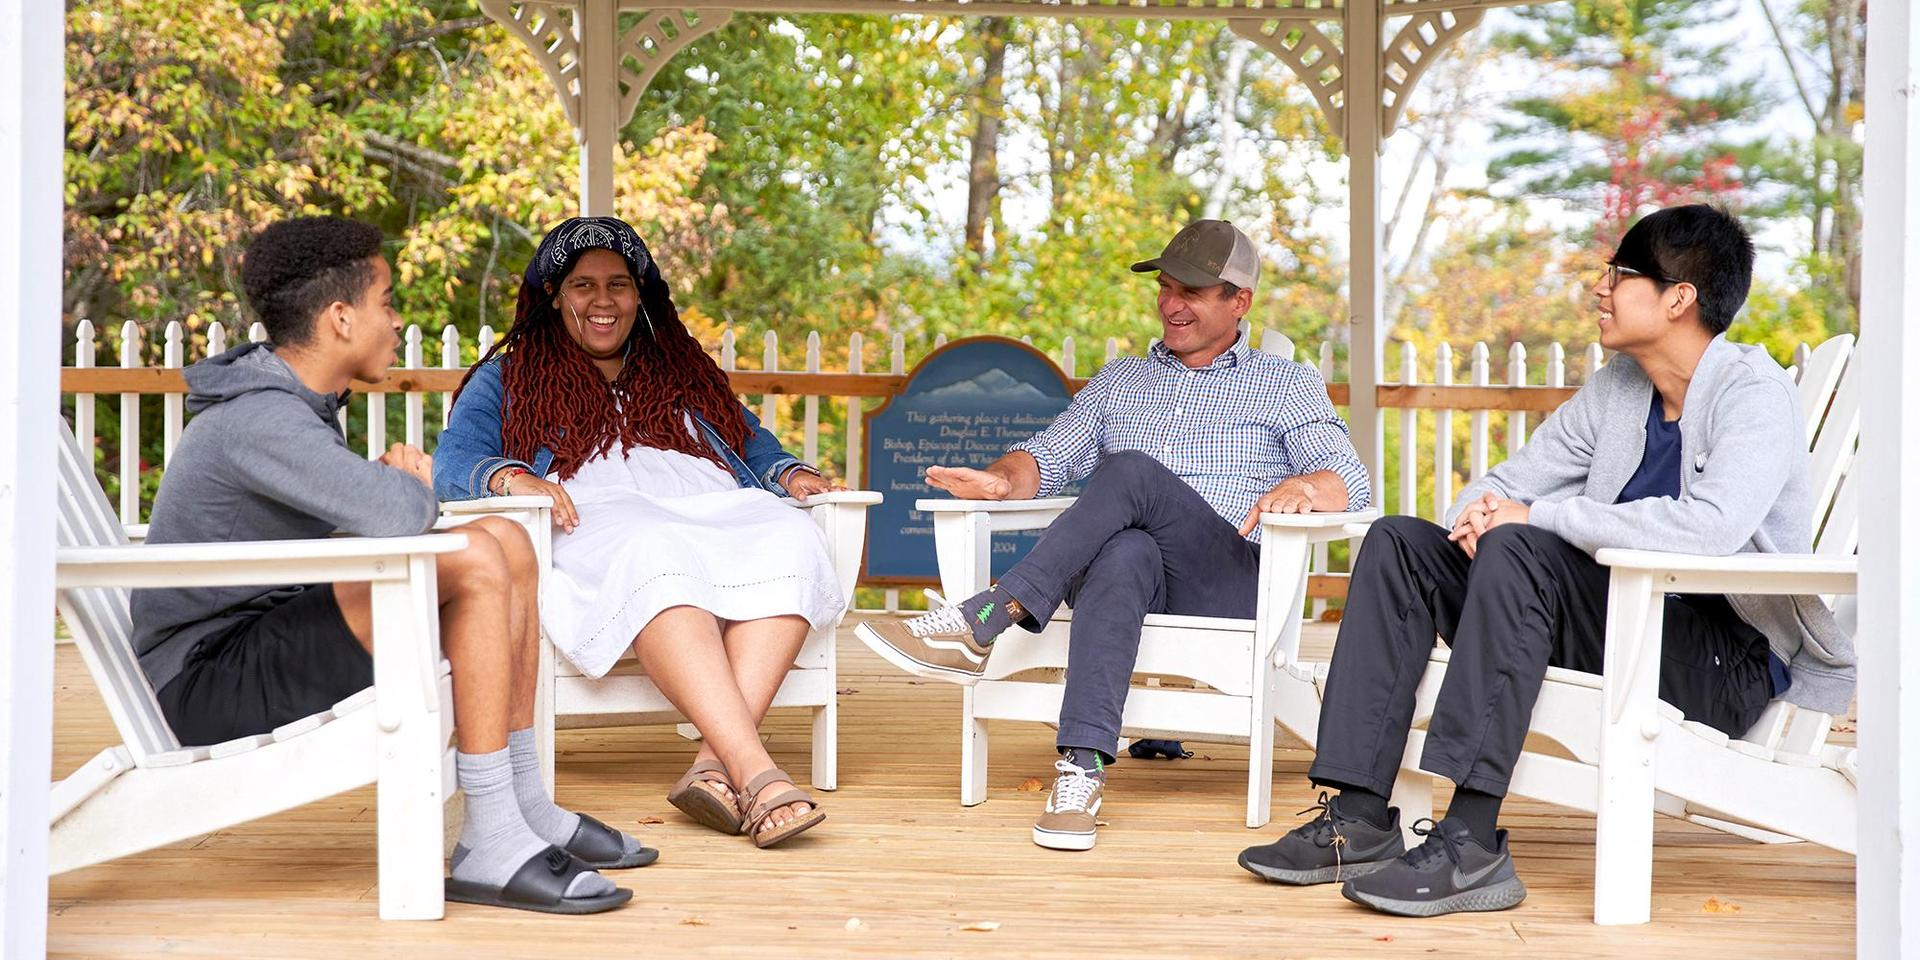 Students in The White Mountain Scholars Program chatting in the Theuner Gazebo with program director Matthew Toms.